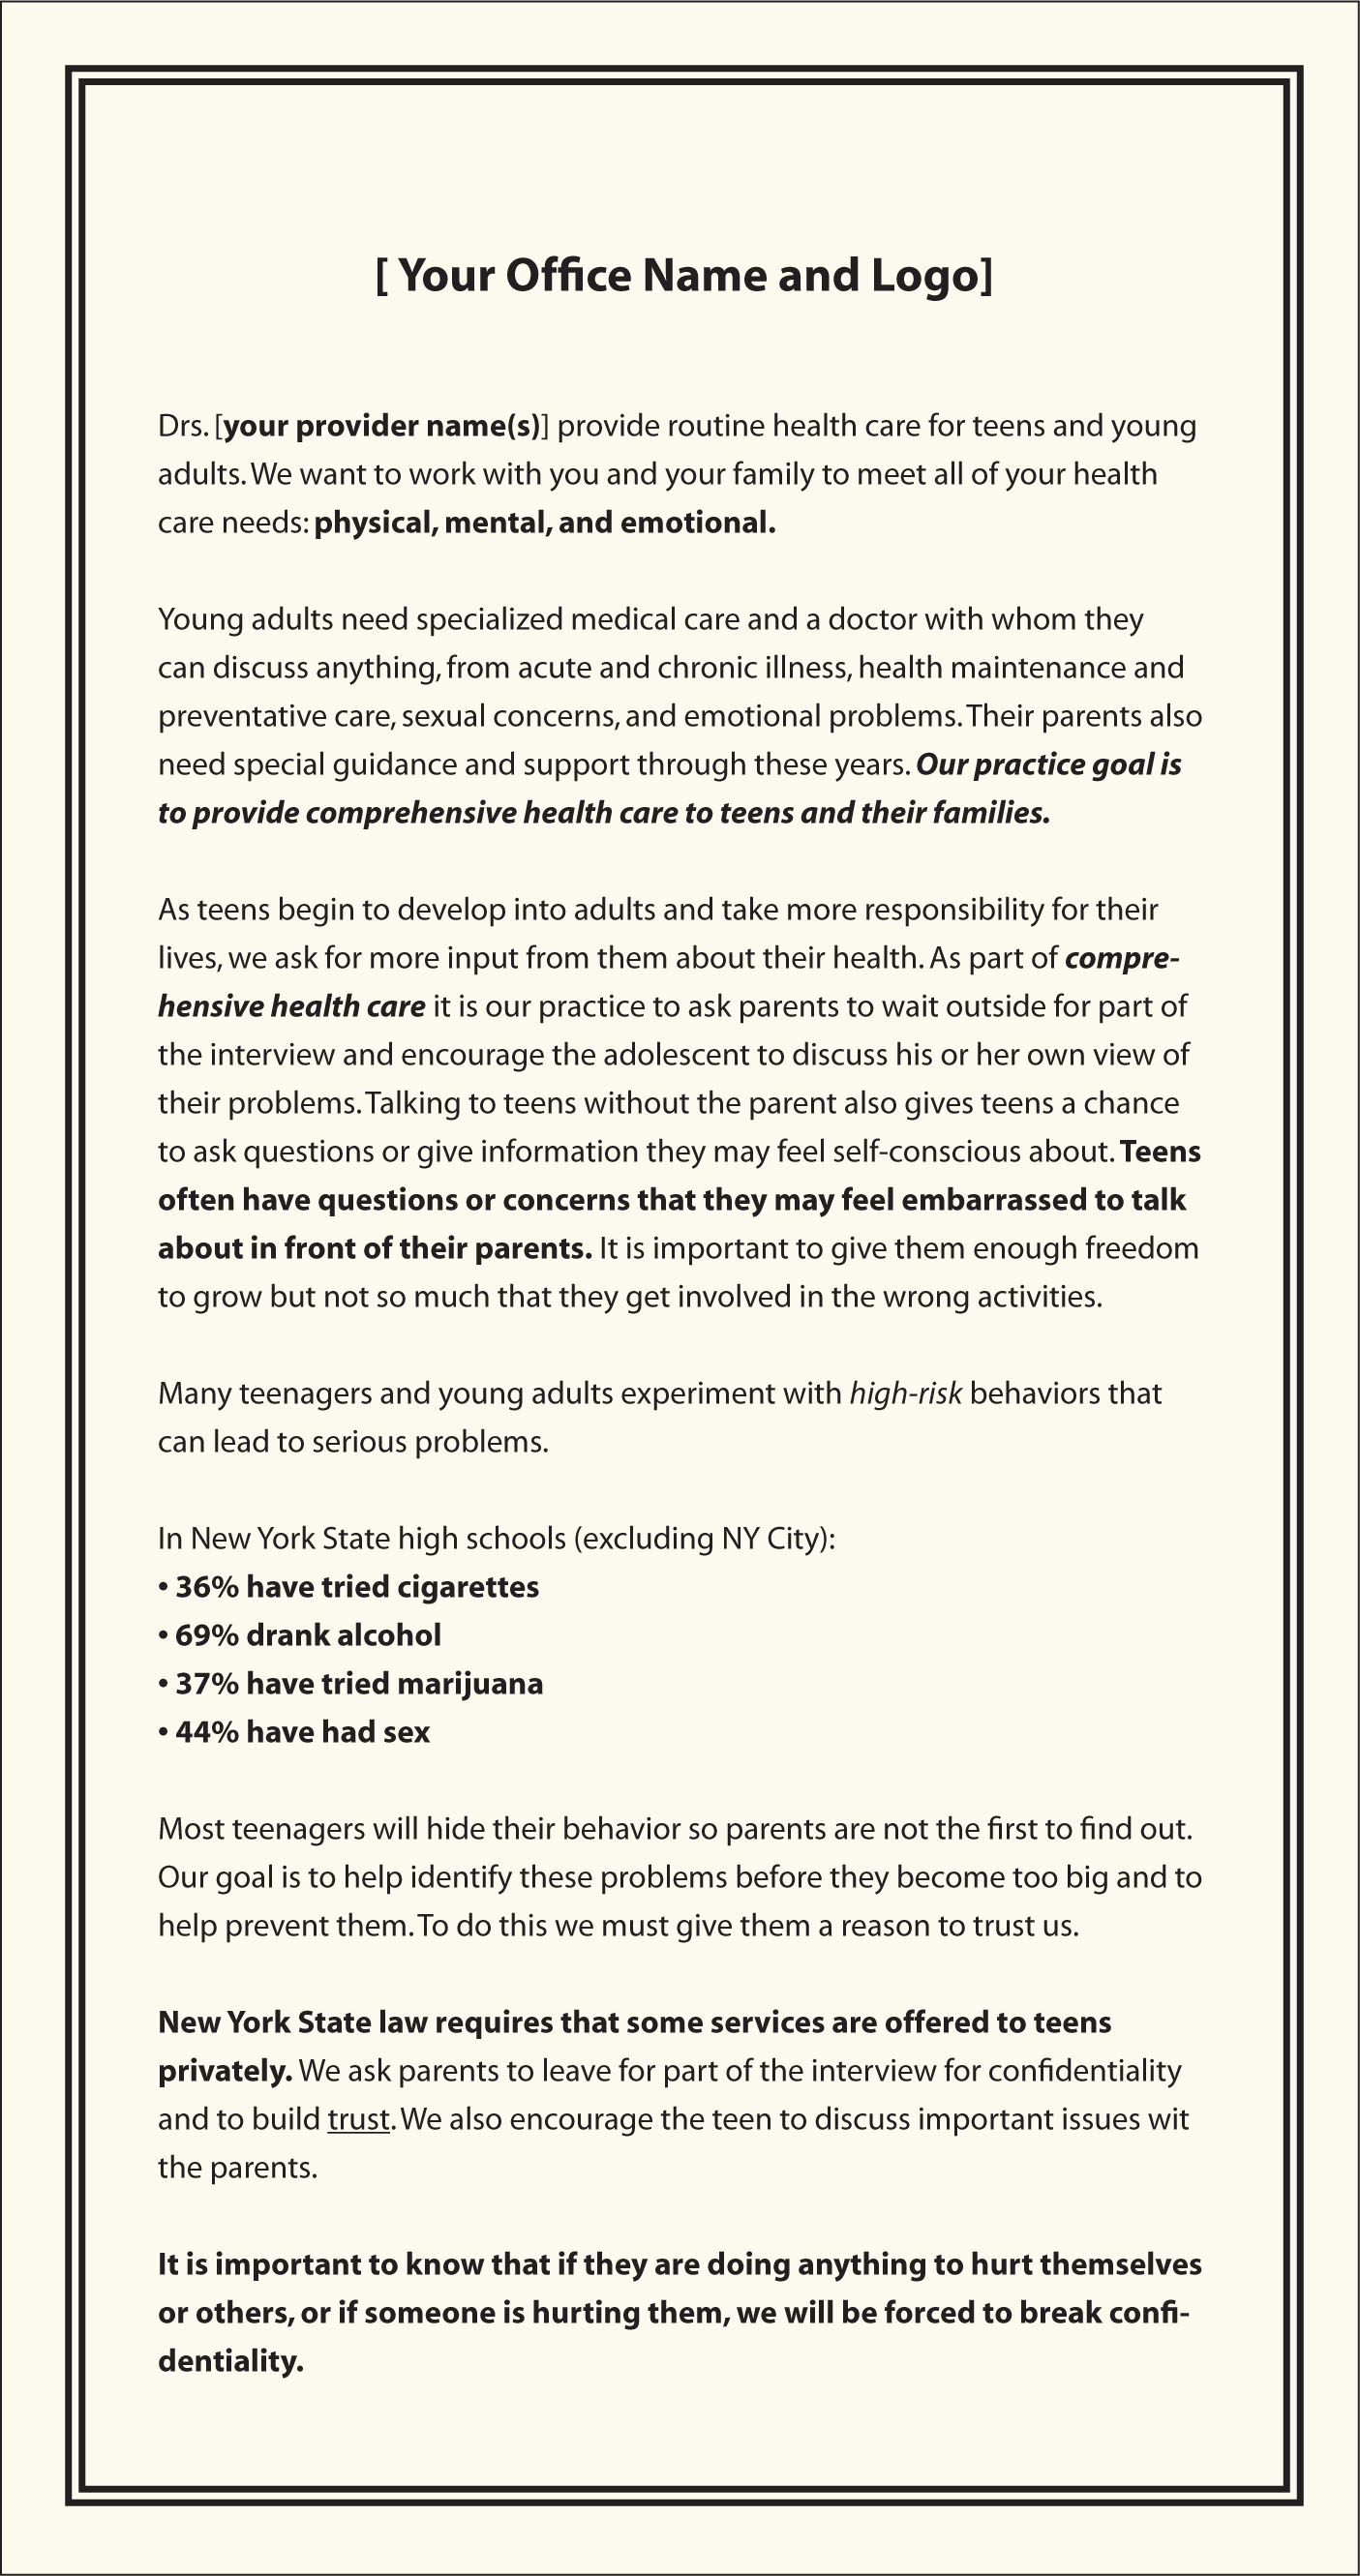 A sample letter to parents regarding adolescent health services offered and confidentiality policy.Image courtesy of Society for Adolescent Health and Medicine3. Reprinted with permission.